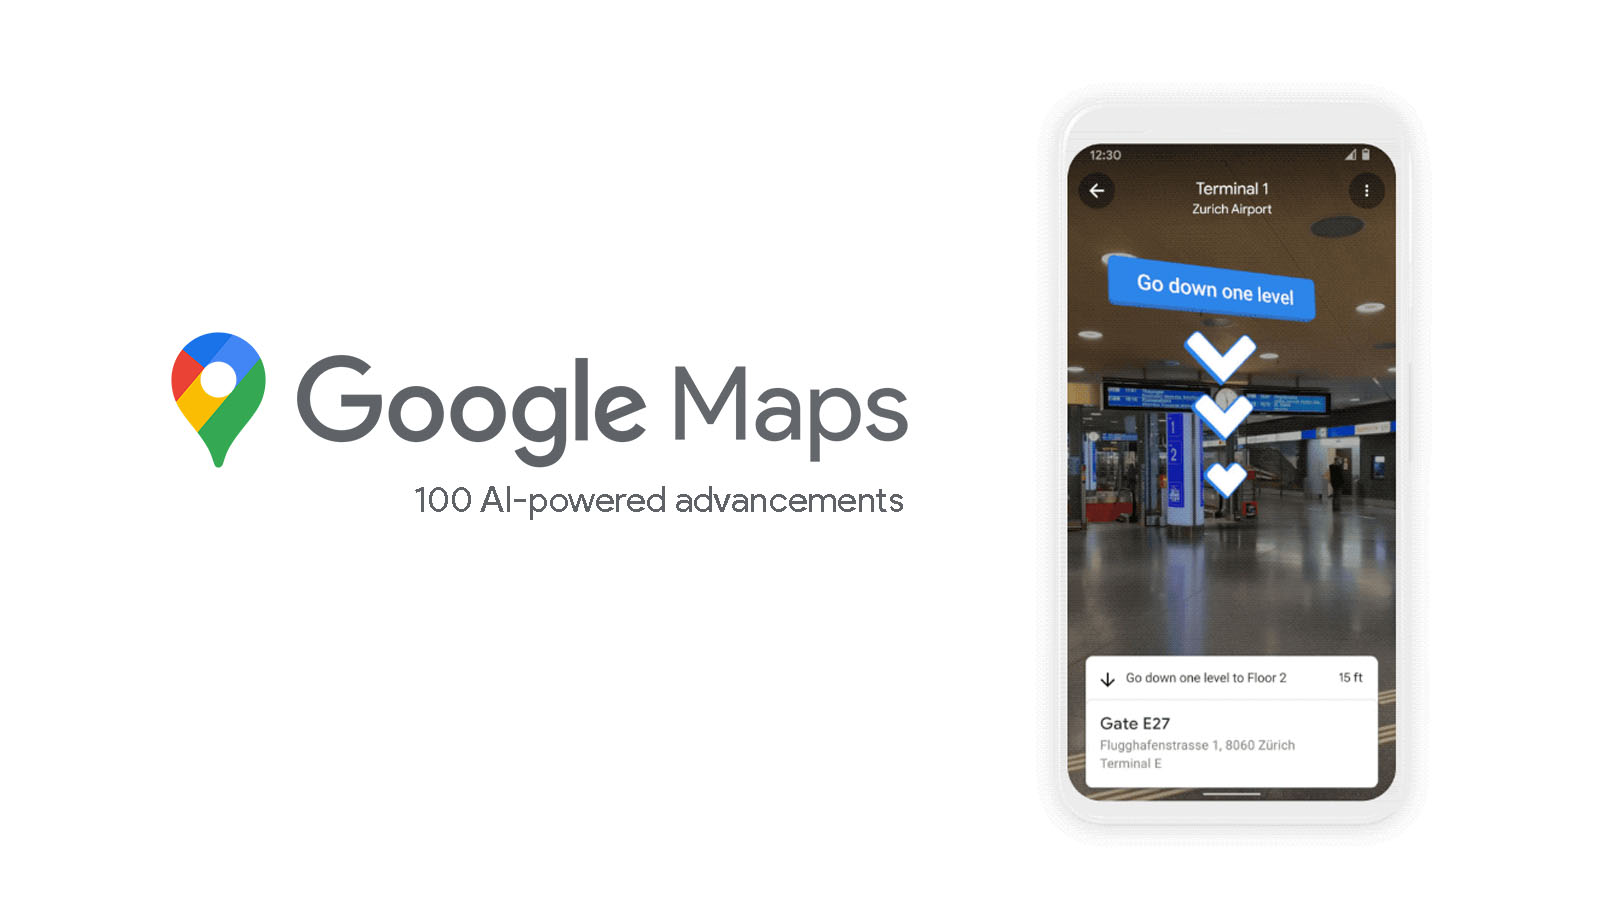 Google Maps to define the next generation of navigation with over 100 AI-powered features